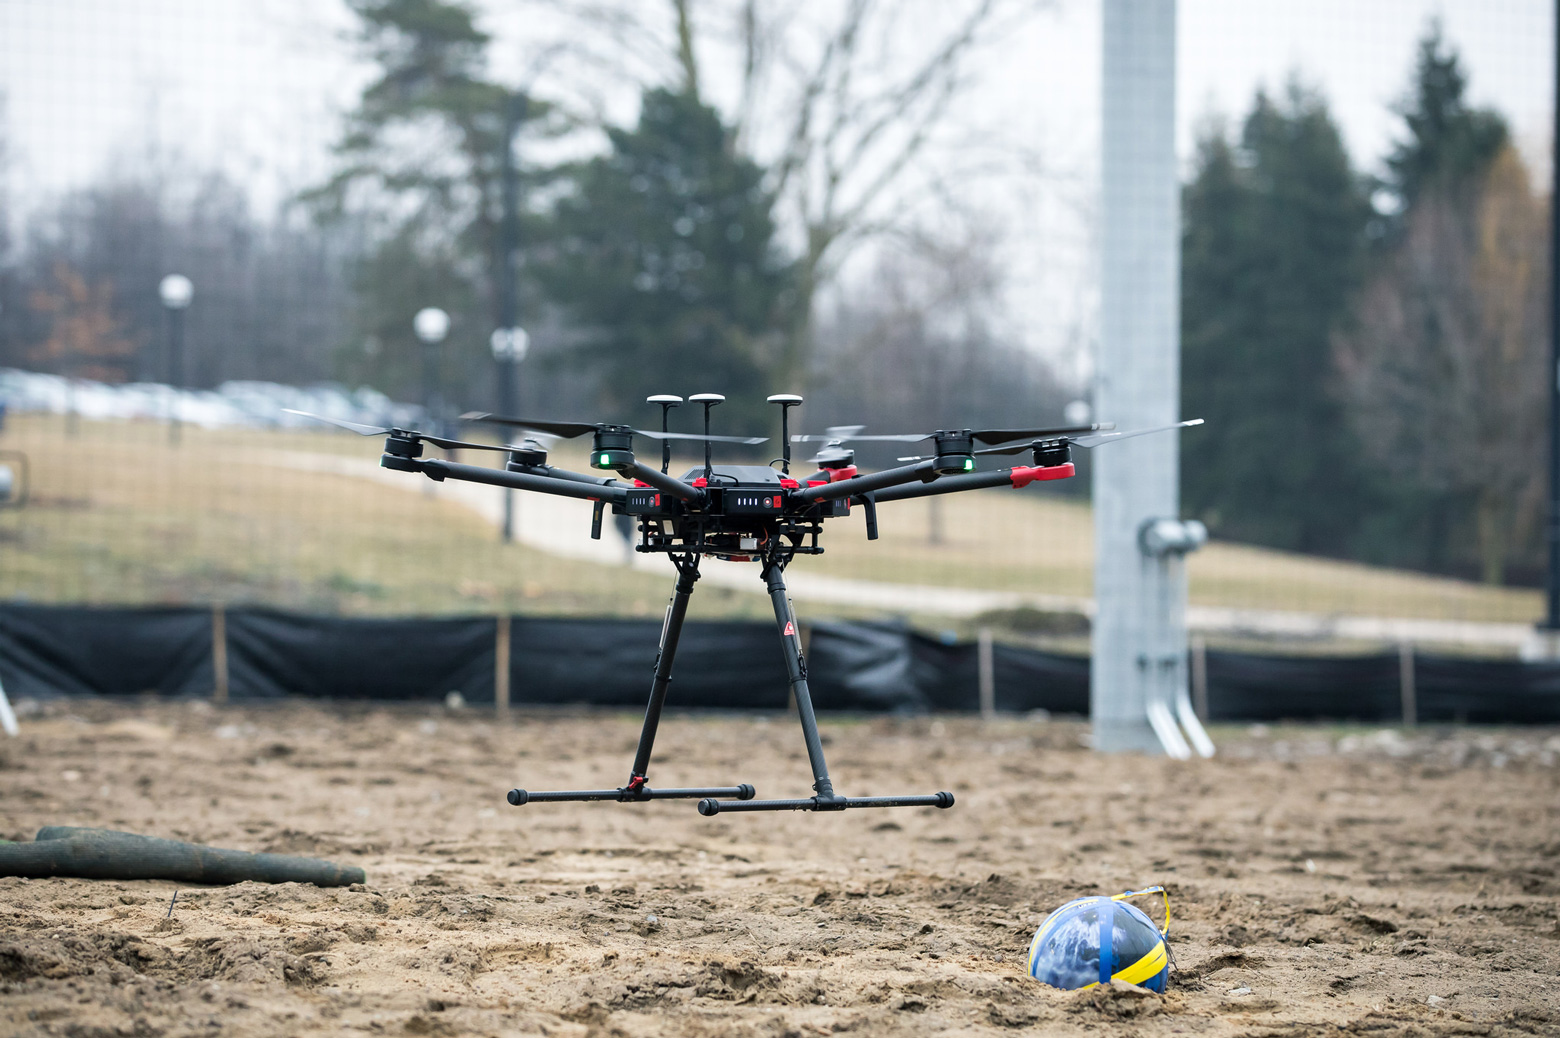 Drone sits on the ground inside the M-Air facility